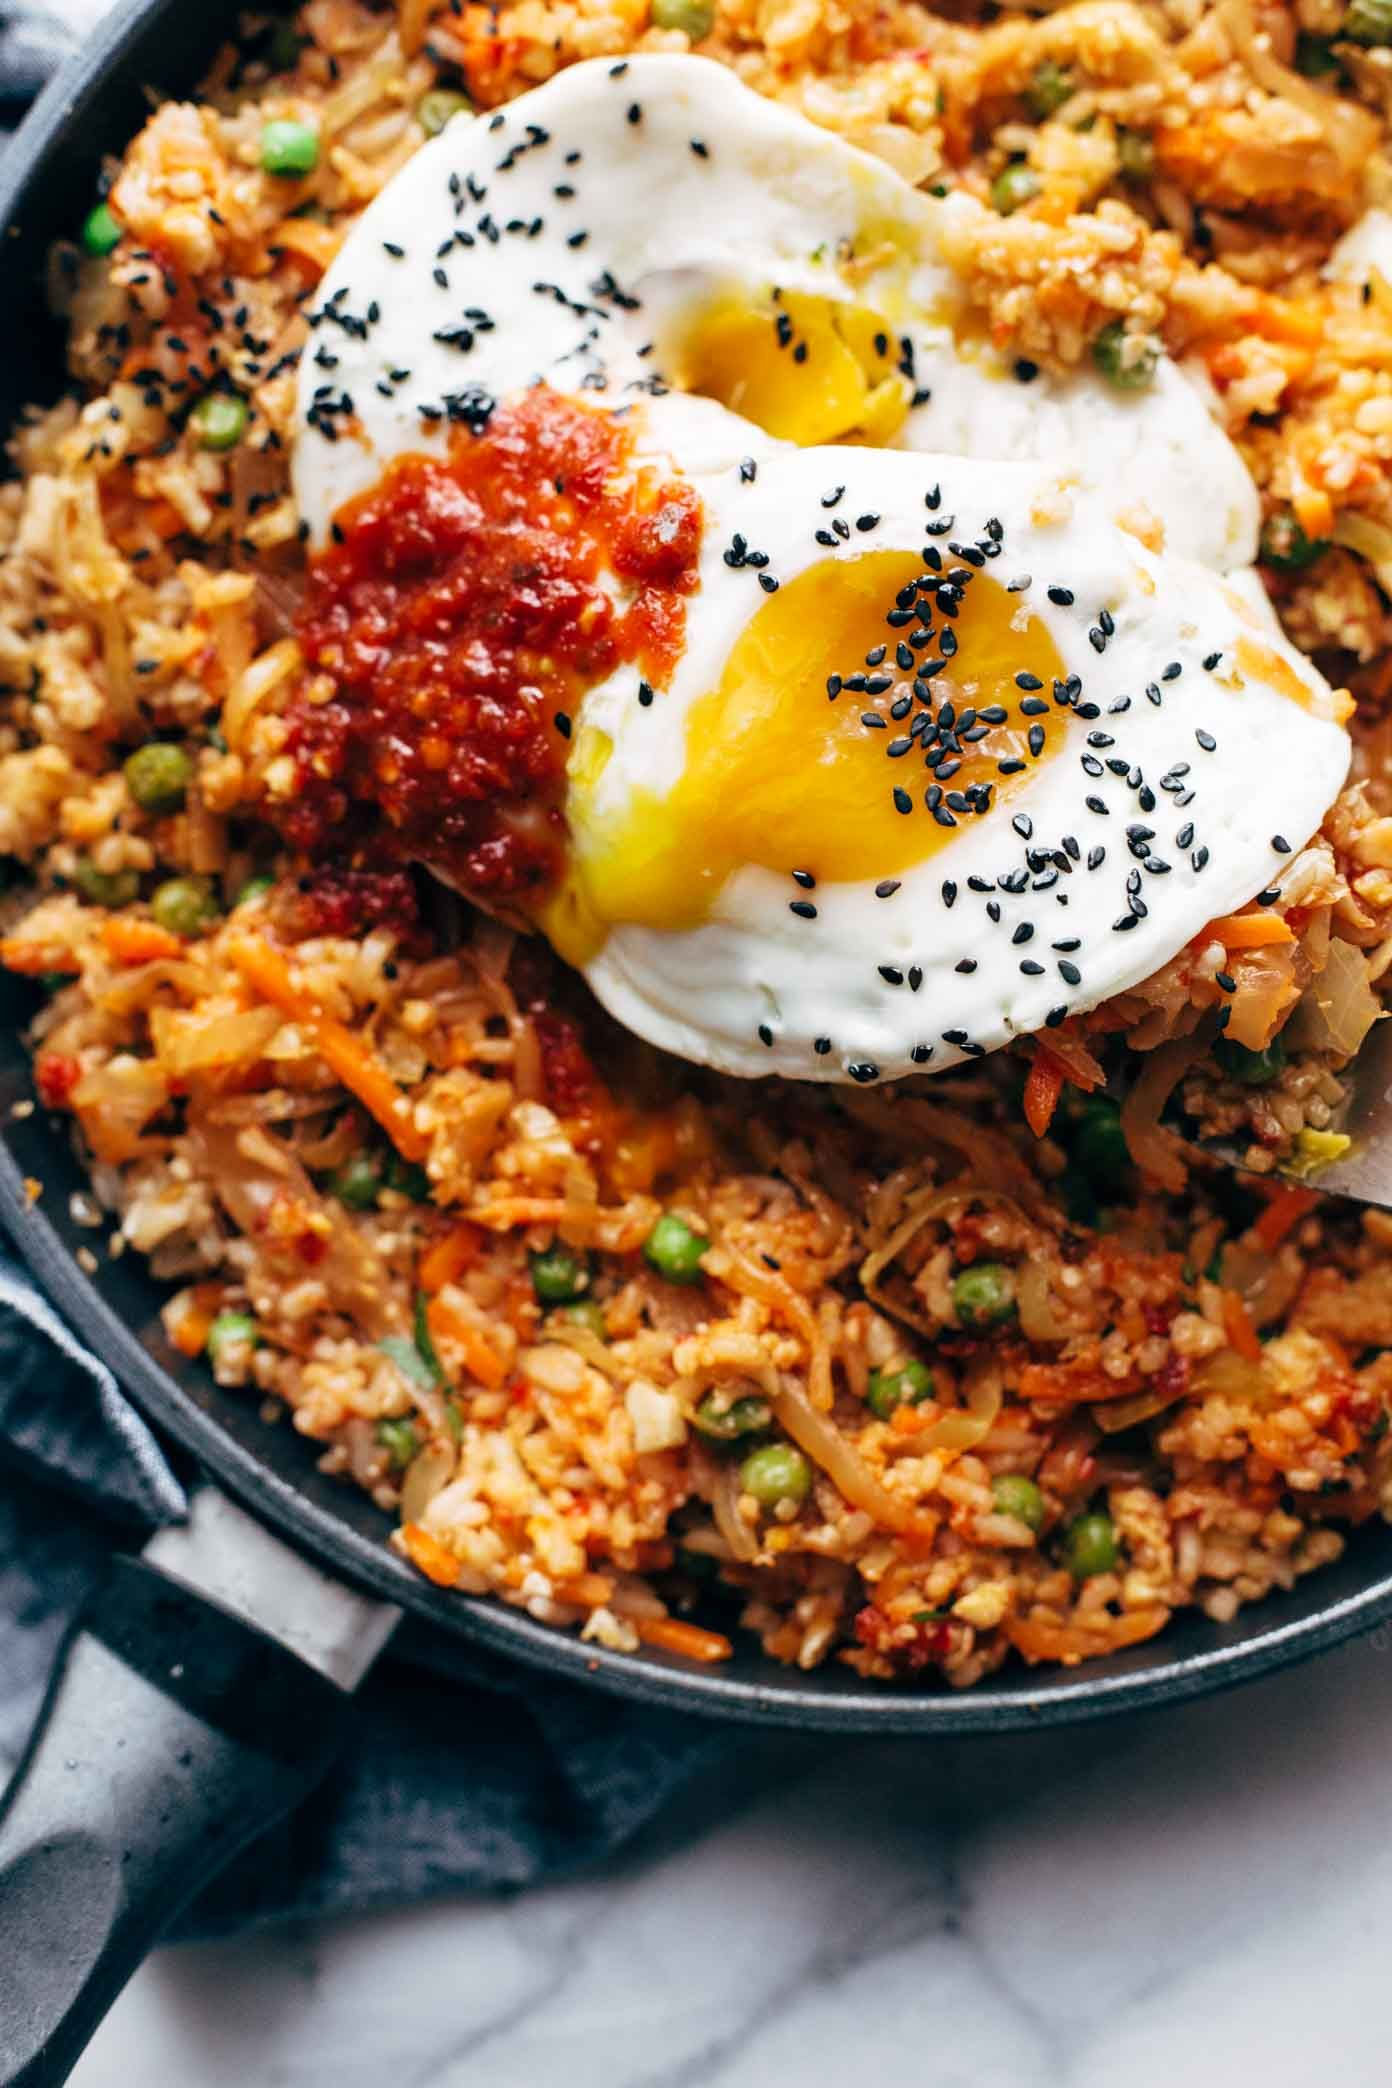 Kimchi Fried Rice FTW Cauliflower rice frozen peas and carrots fresh garlic and ginger soy sauce chili paste a forkful of kimchi and finished with a runny yolk waterfall...